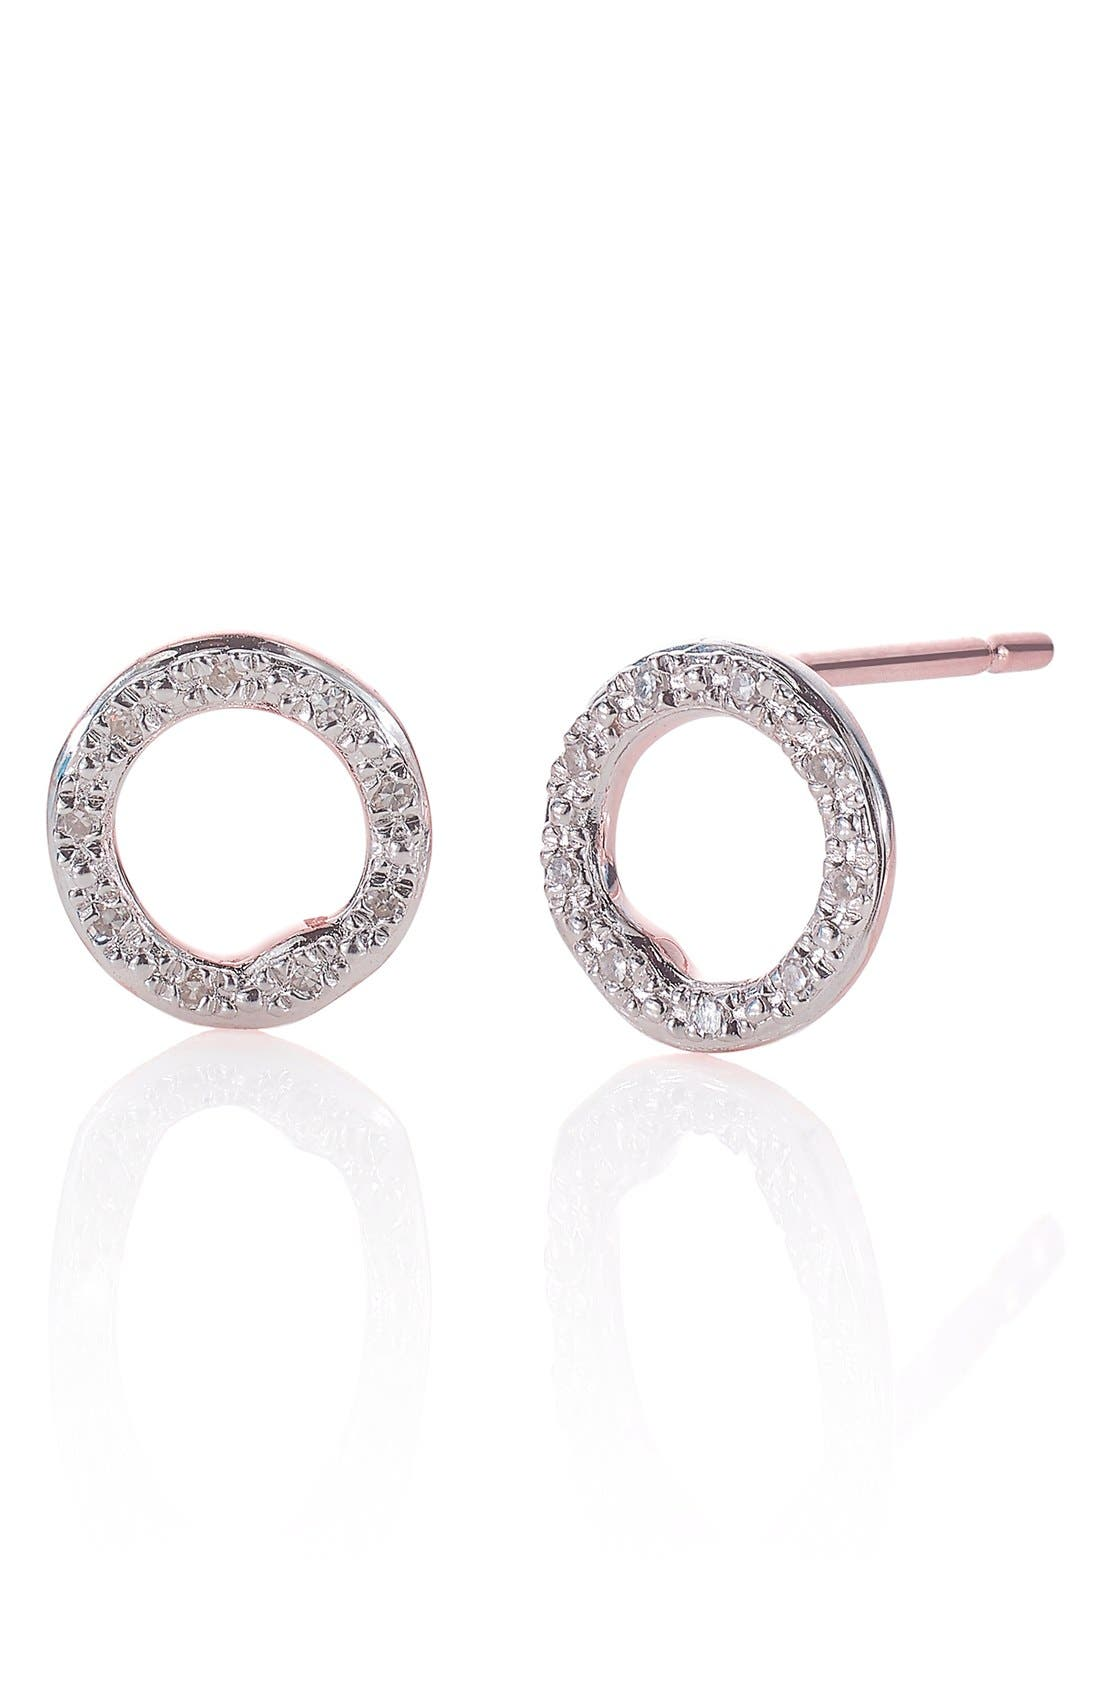 Monica Vinader 'Riva' Circle Stud Diamond Earrings